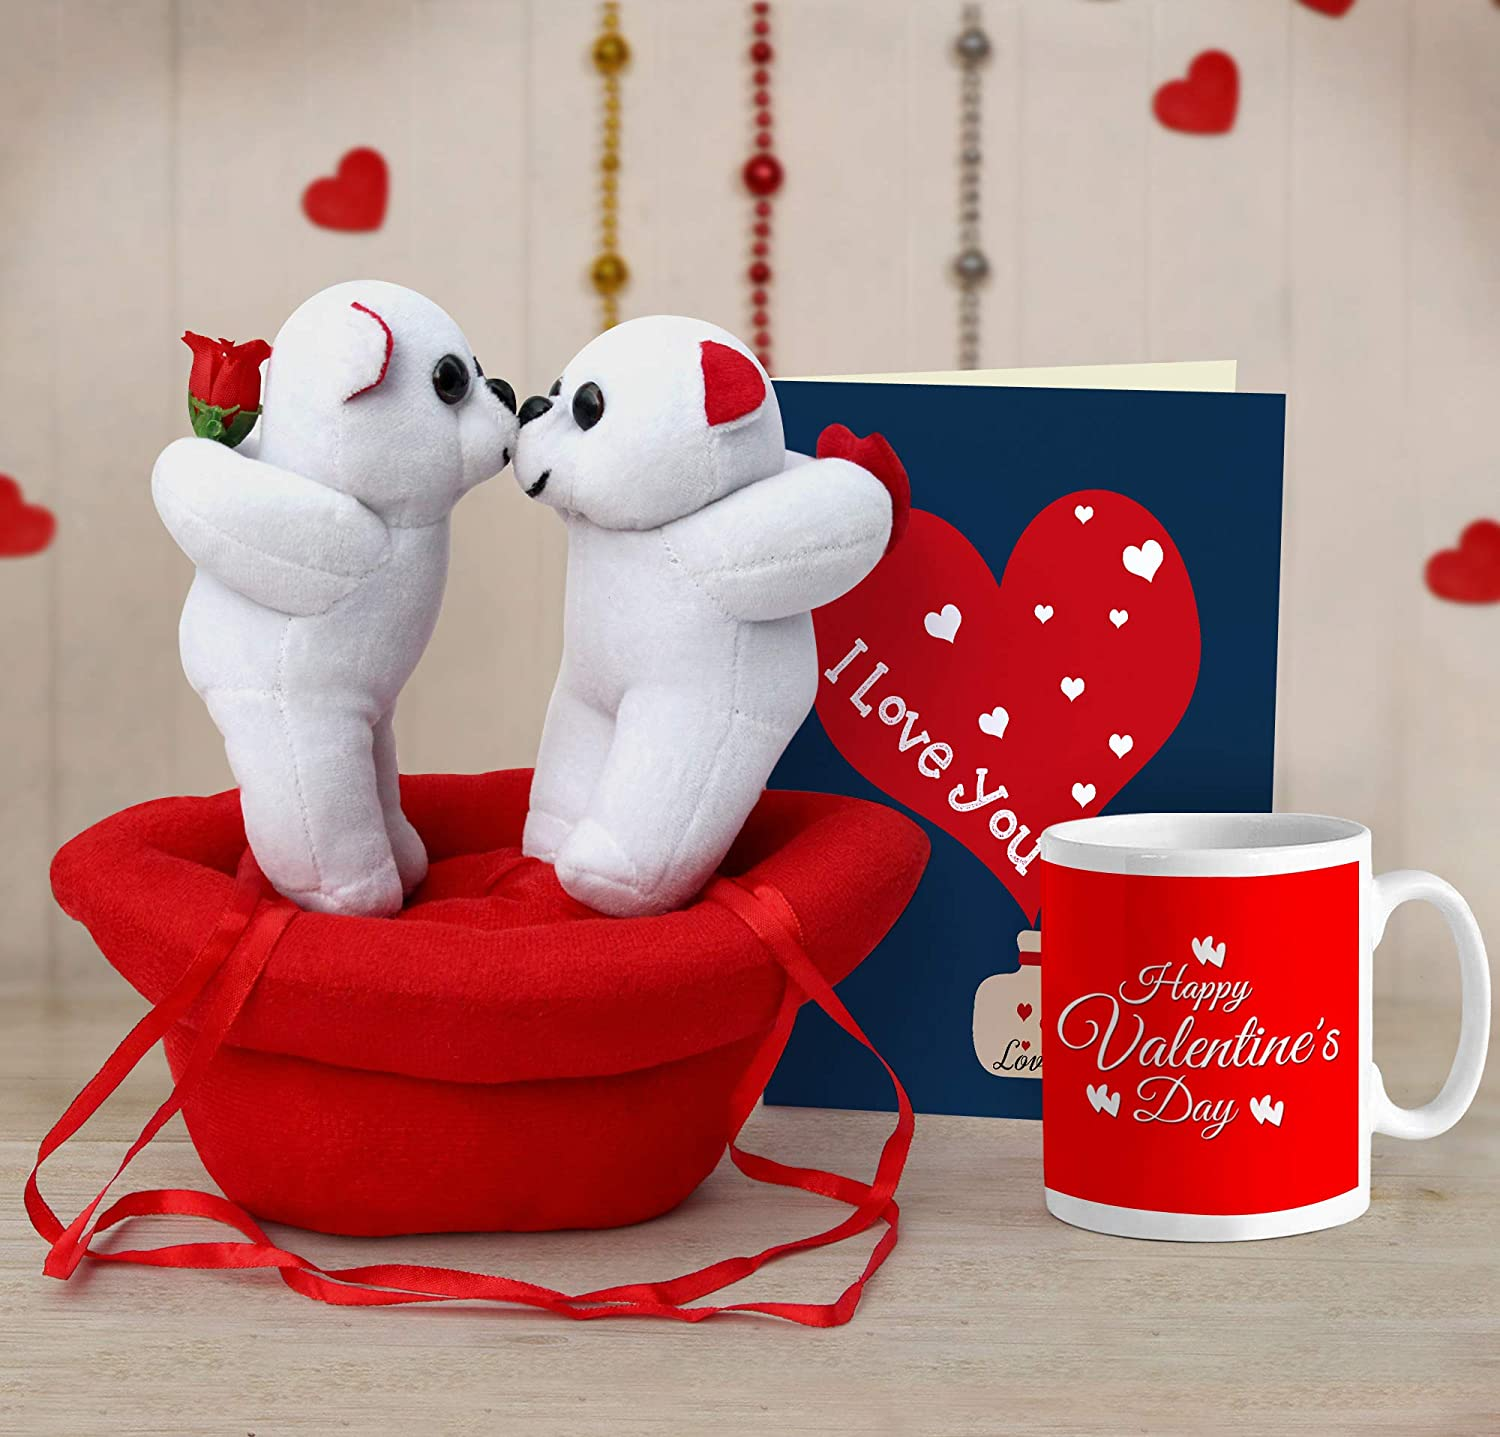 Buy Tied Ribbons Valentine Gift For Wife Husband Girlfriend Boyfriend Him Her Valentines Special Couple Teddy With Boat Printed Coffee Mug 325 Ml And Greeting Card Online At Low Prices In